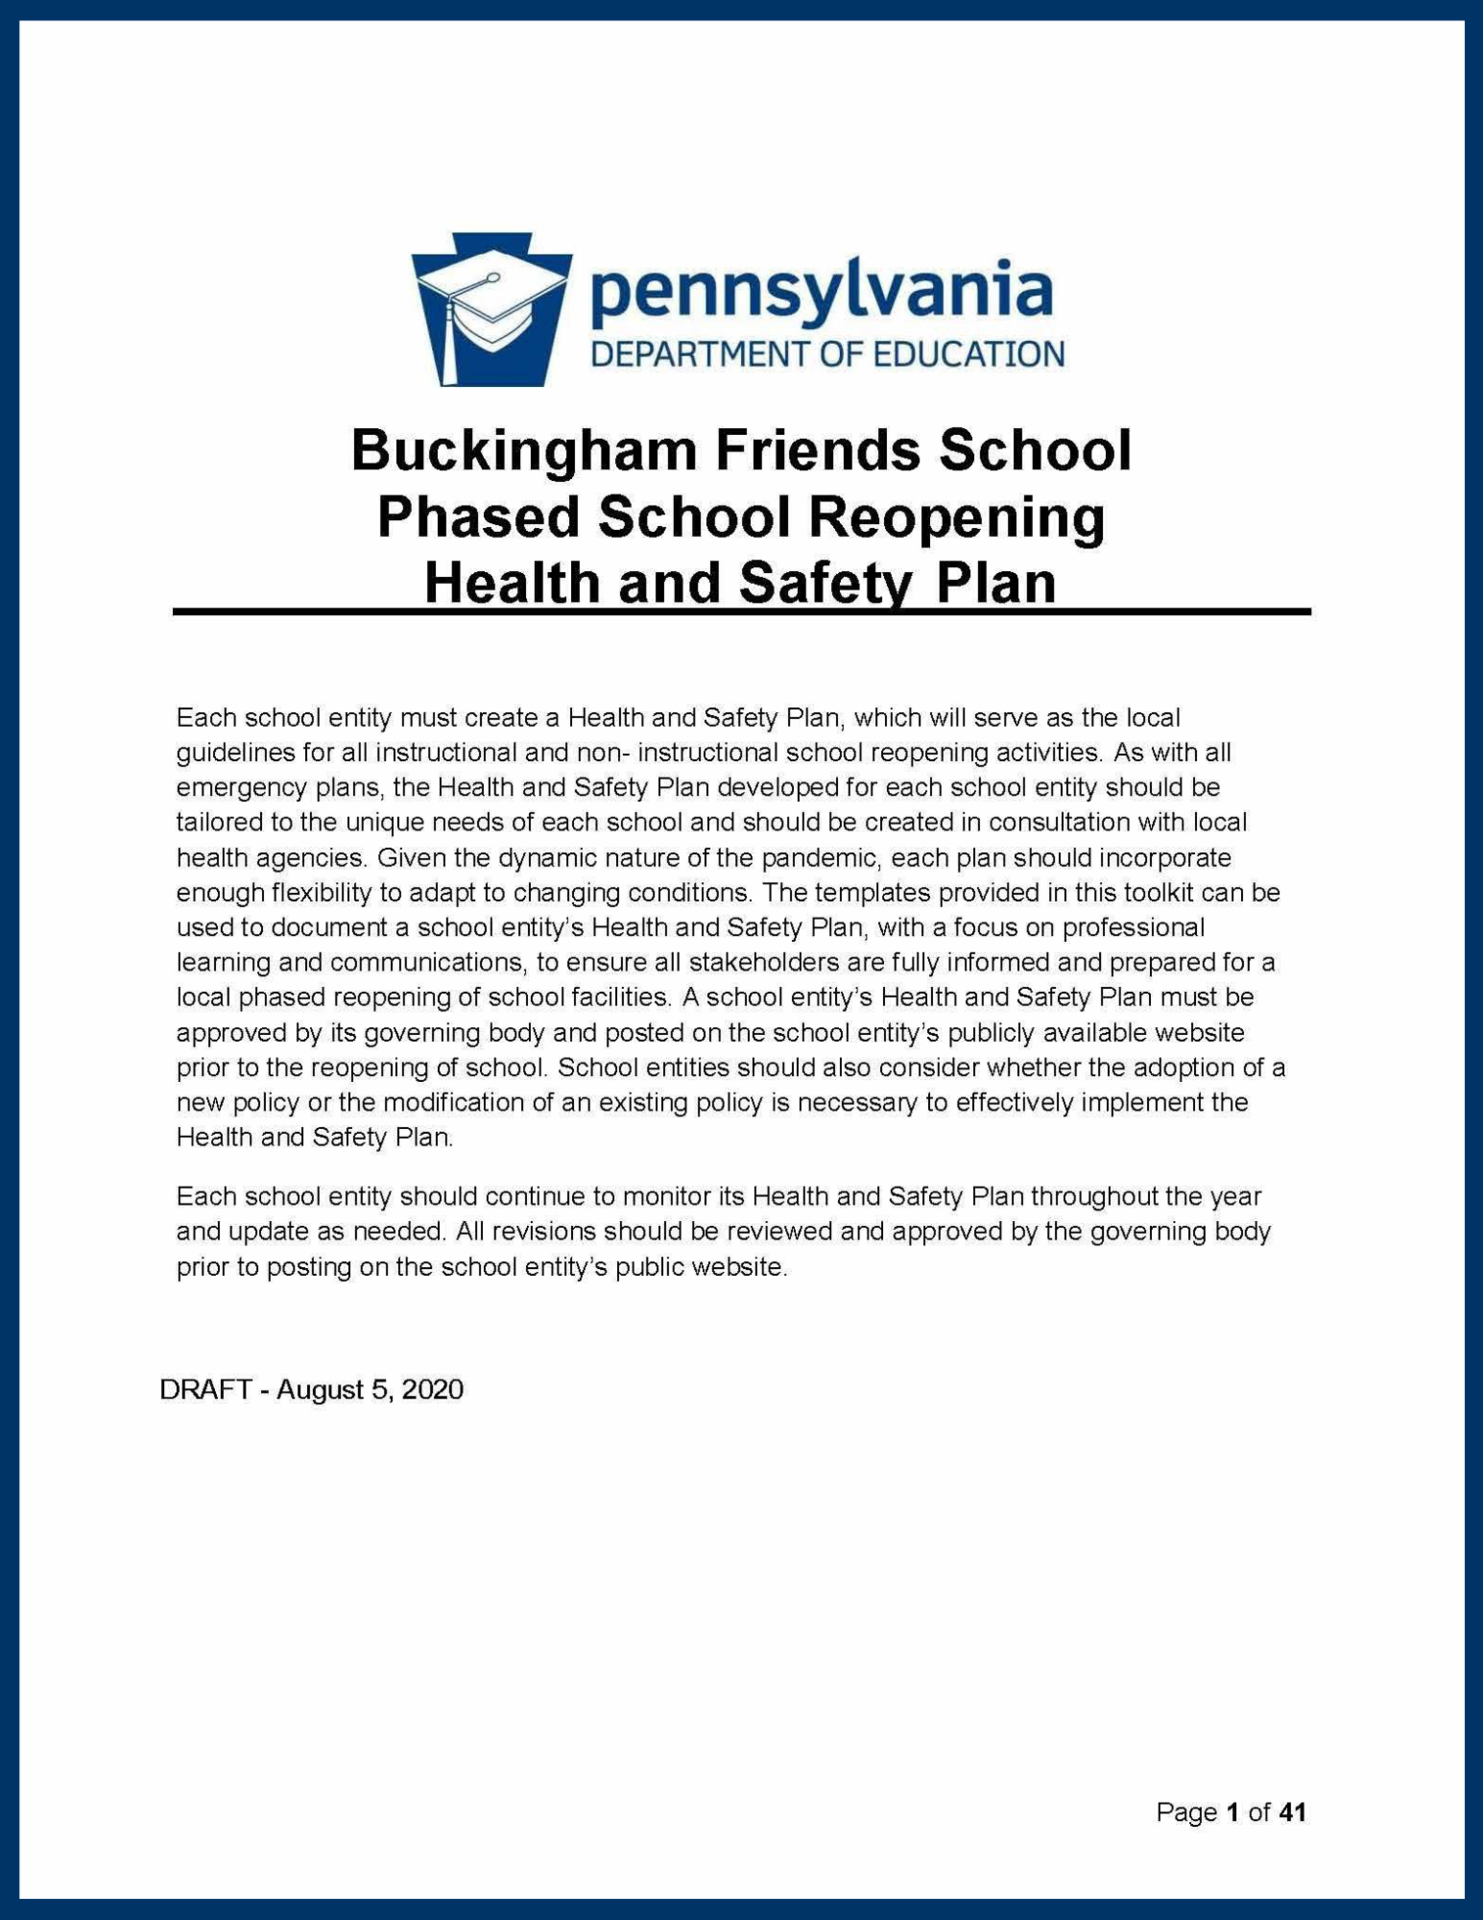 Phased School Reopening Health & Safety Plan